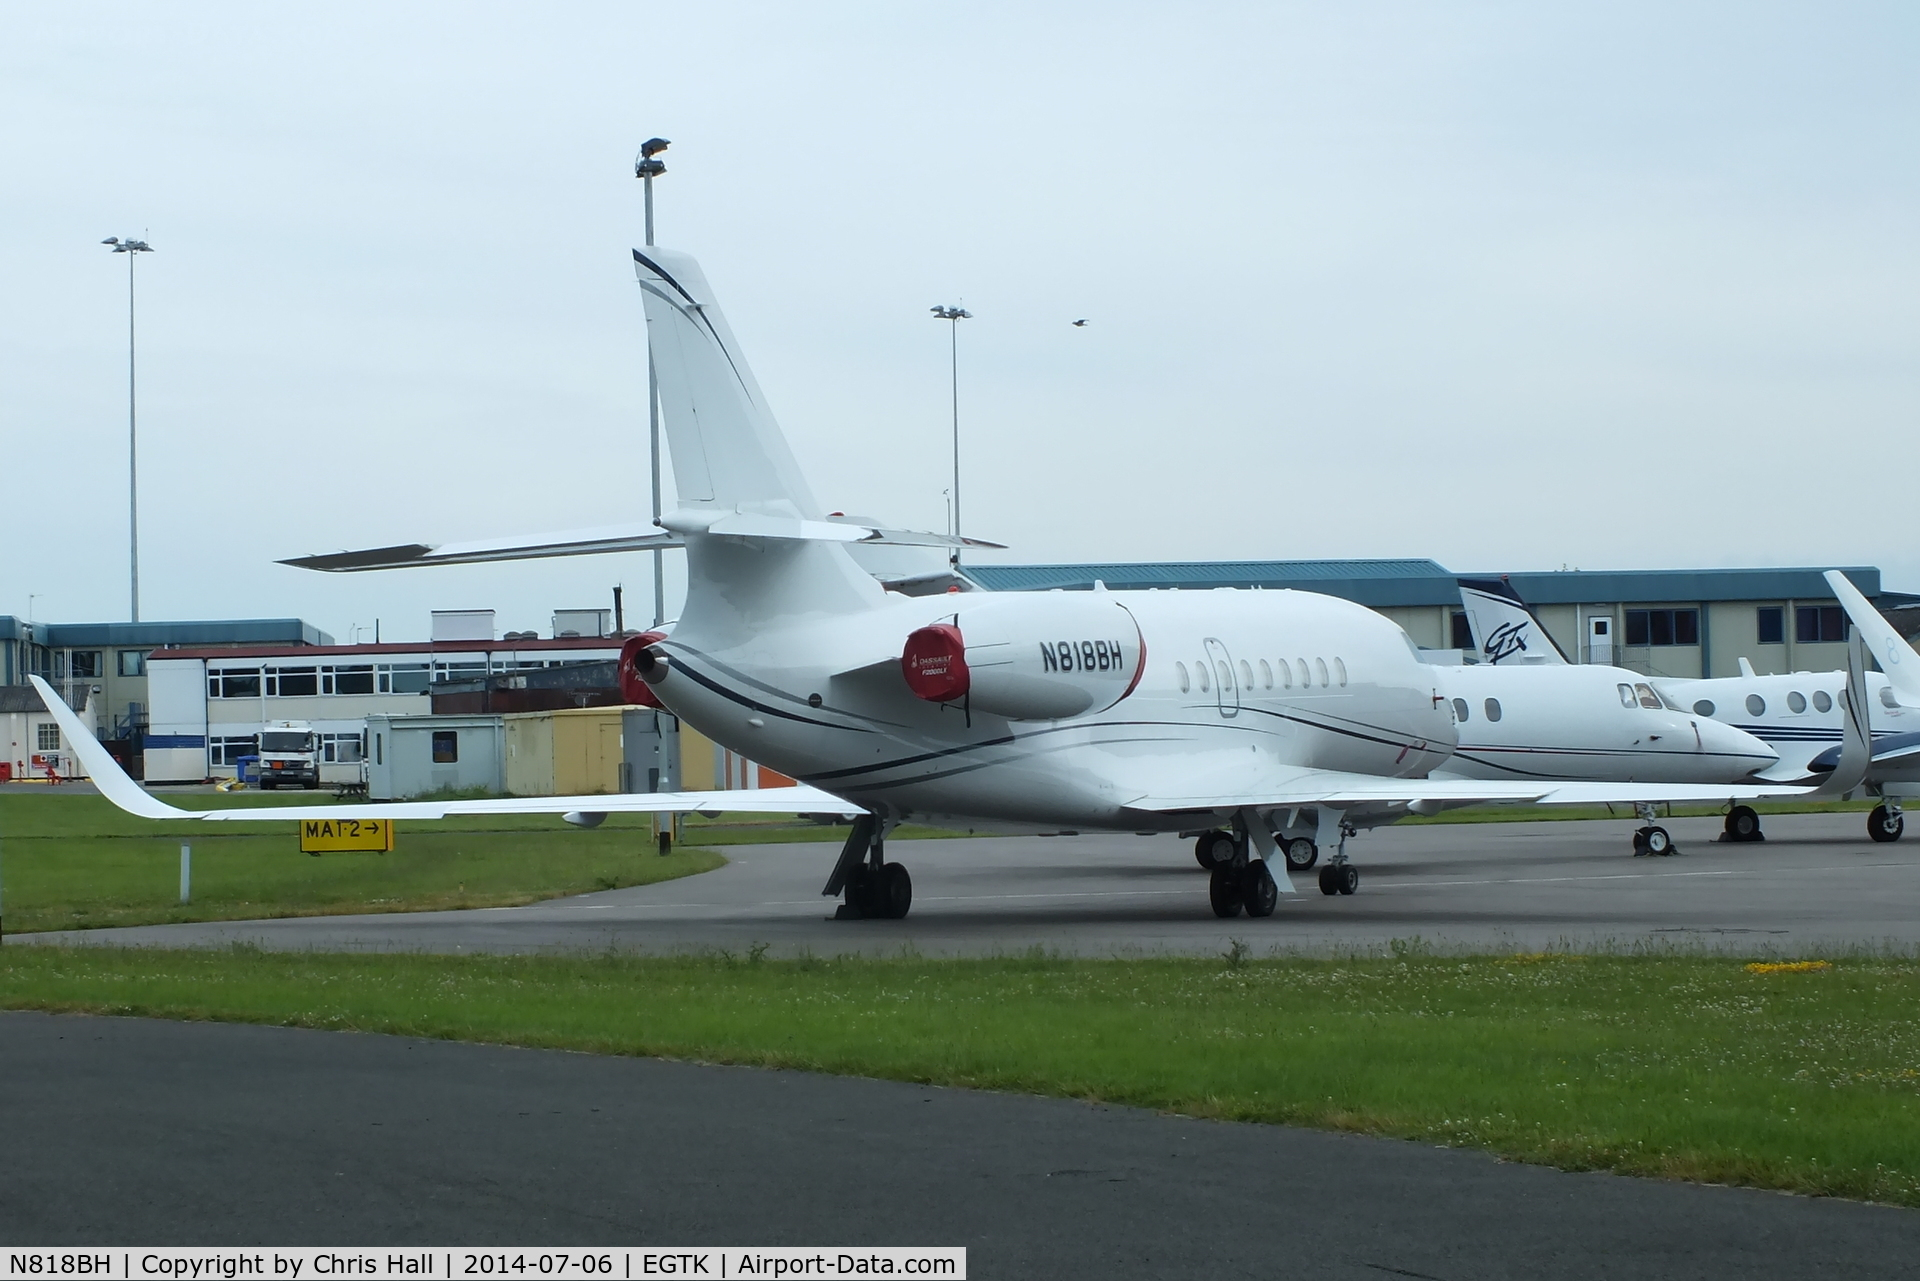 N818BH, 2005 Dassault Falcon 2000EX C/N 57, parked at Oxford